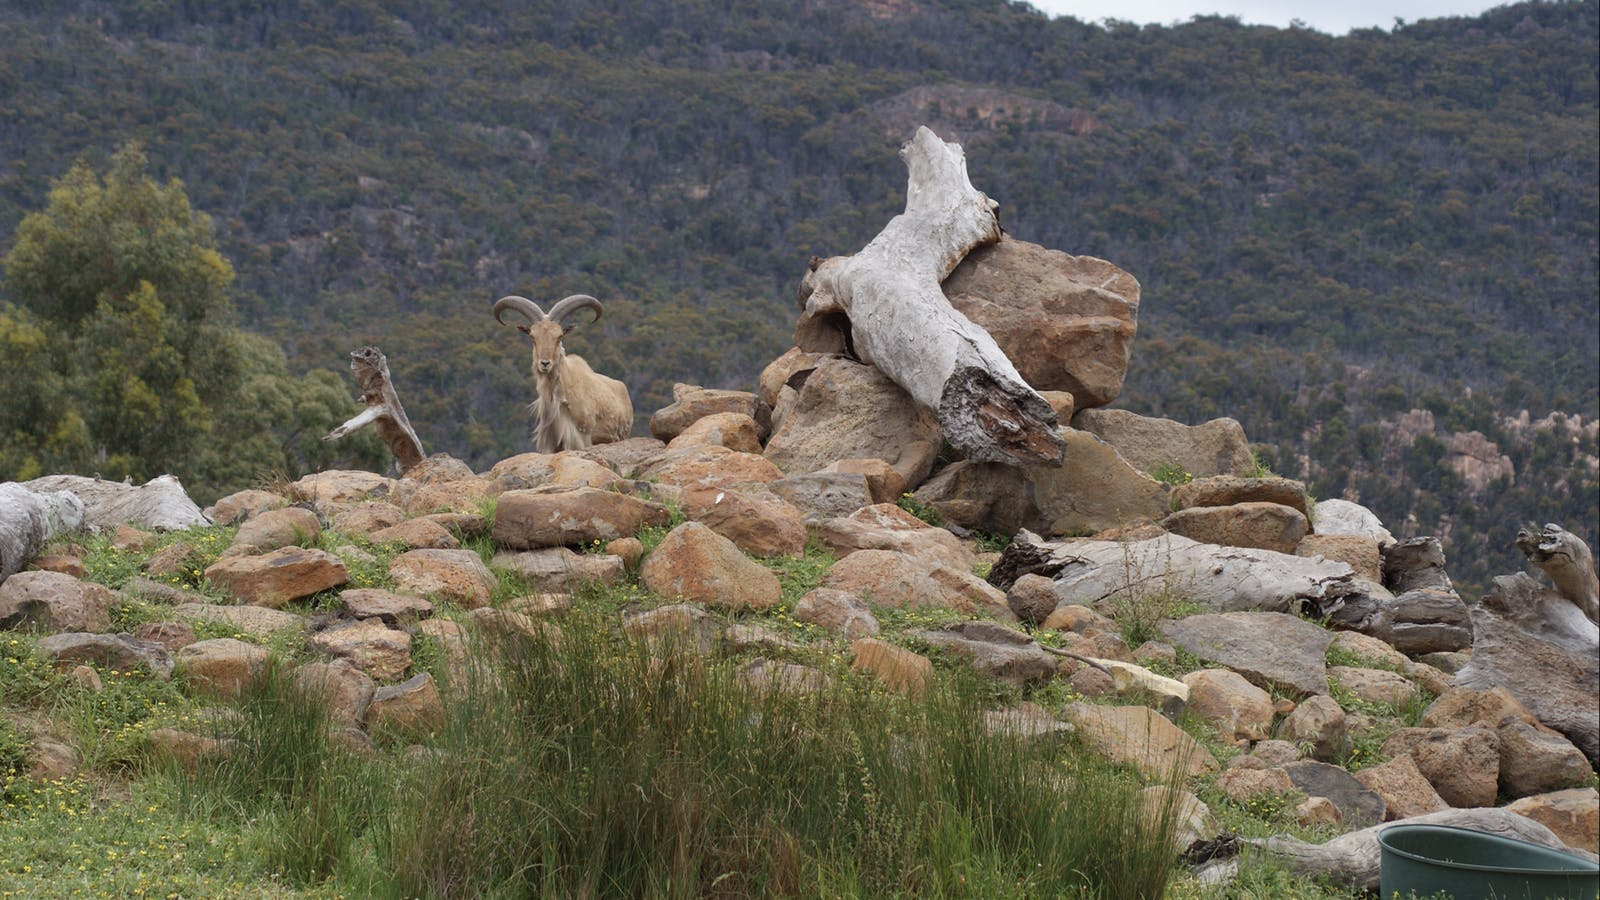 Barbary Sheep with the Grampians in the background